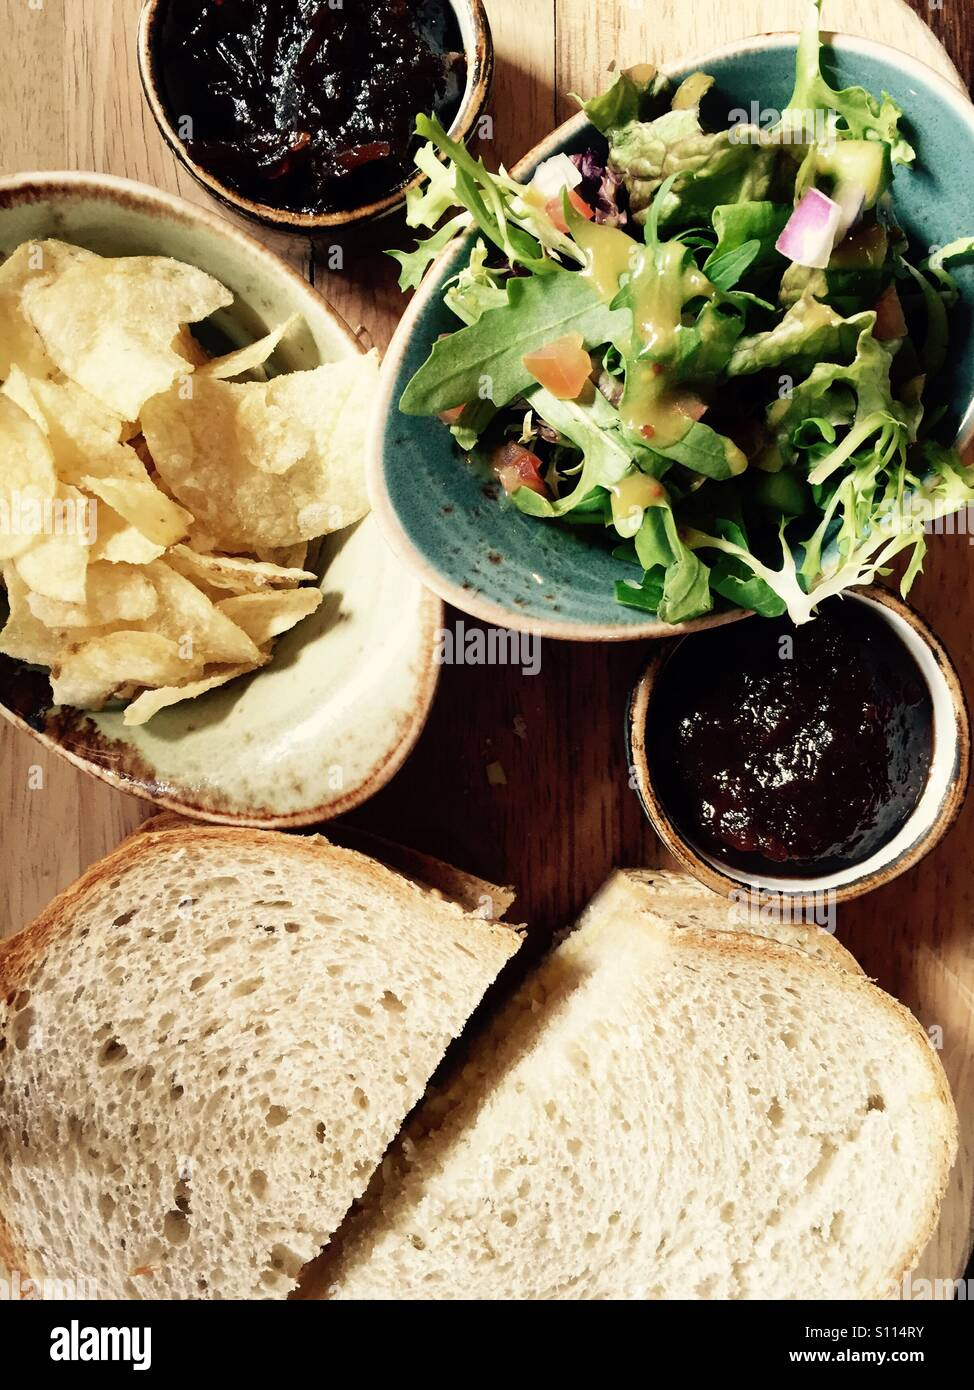 Cheese sandwich served on a wooden board with a side salad, crisps, and chutneys - Stock Image